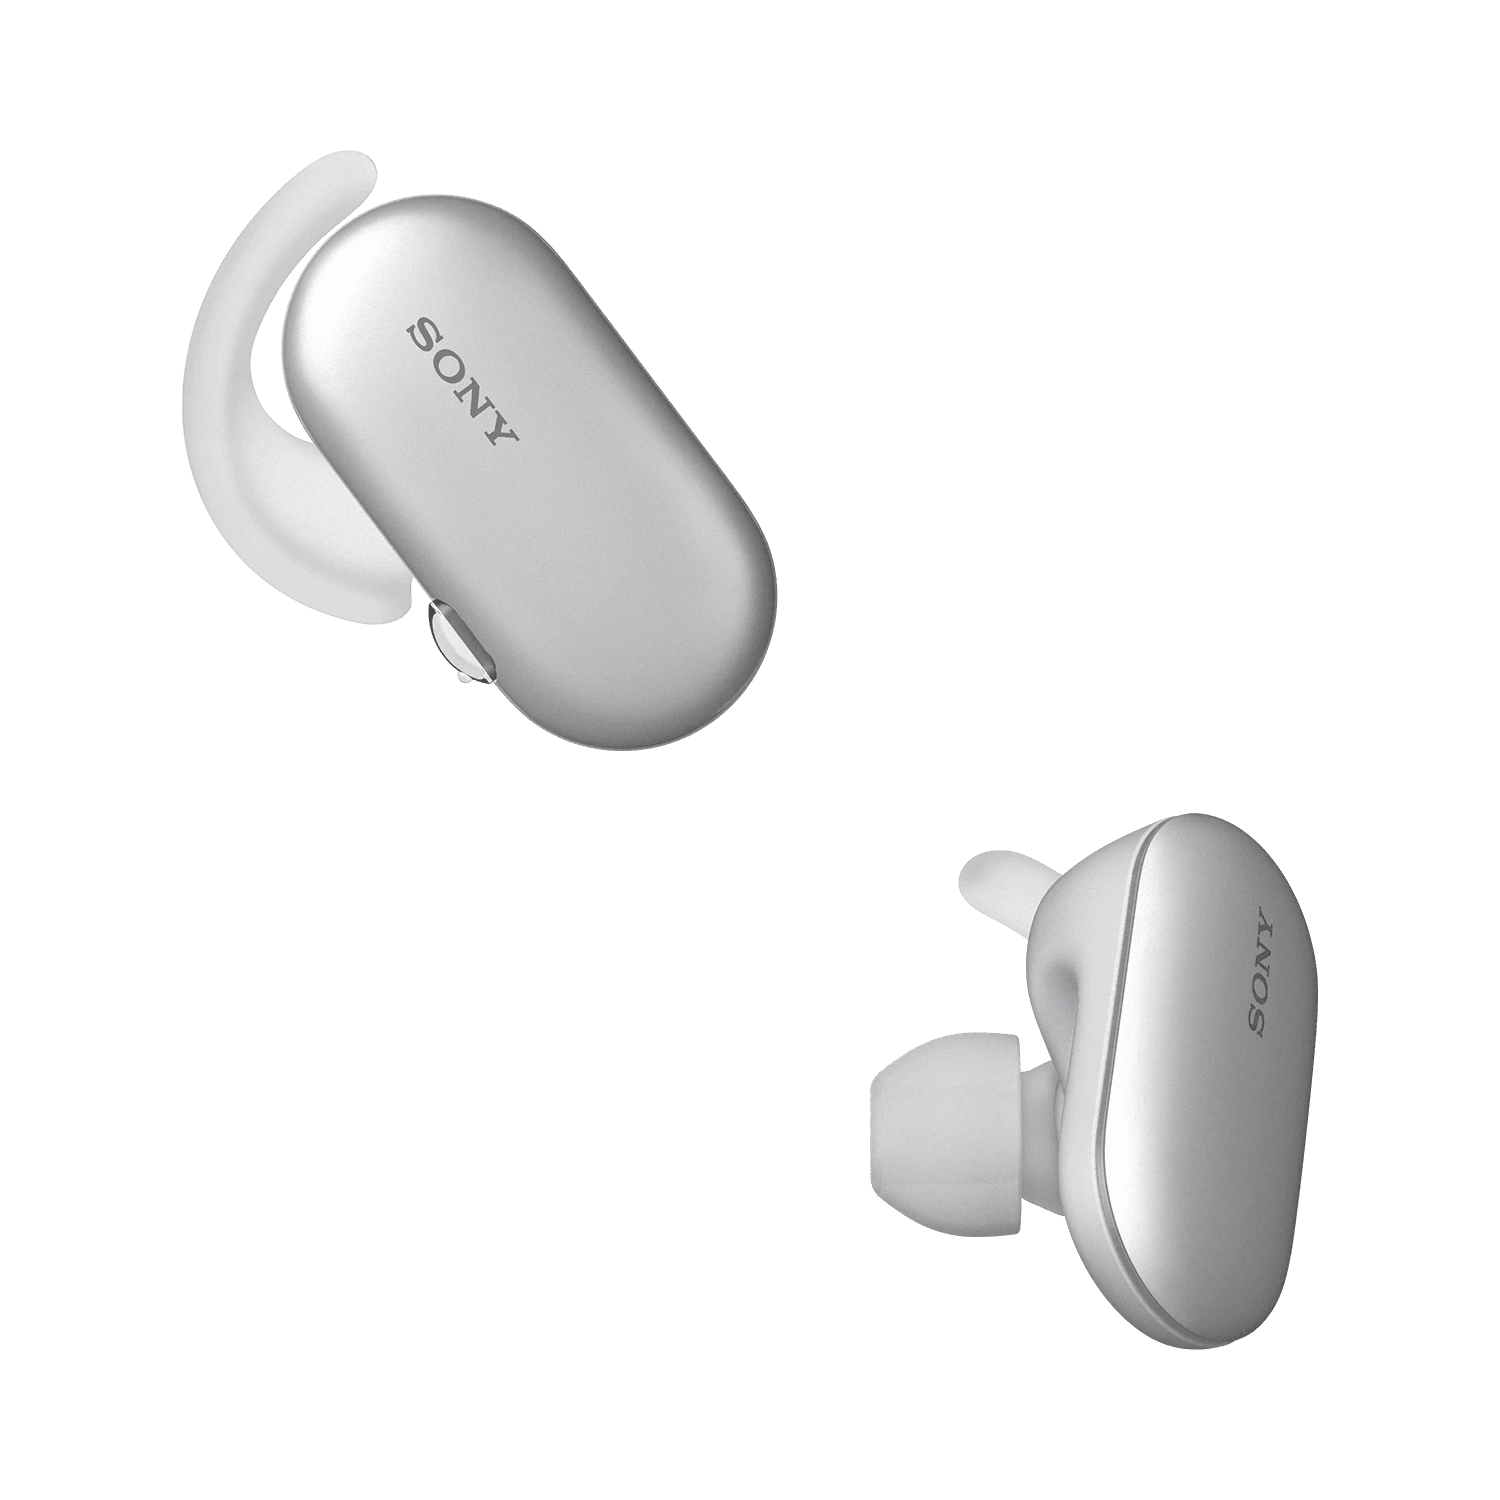 WF-SP900 Sports Wireless Headphones (White)